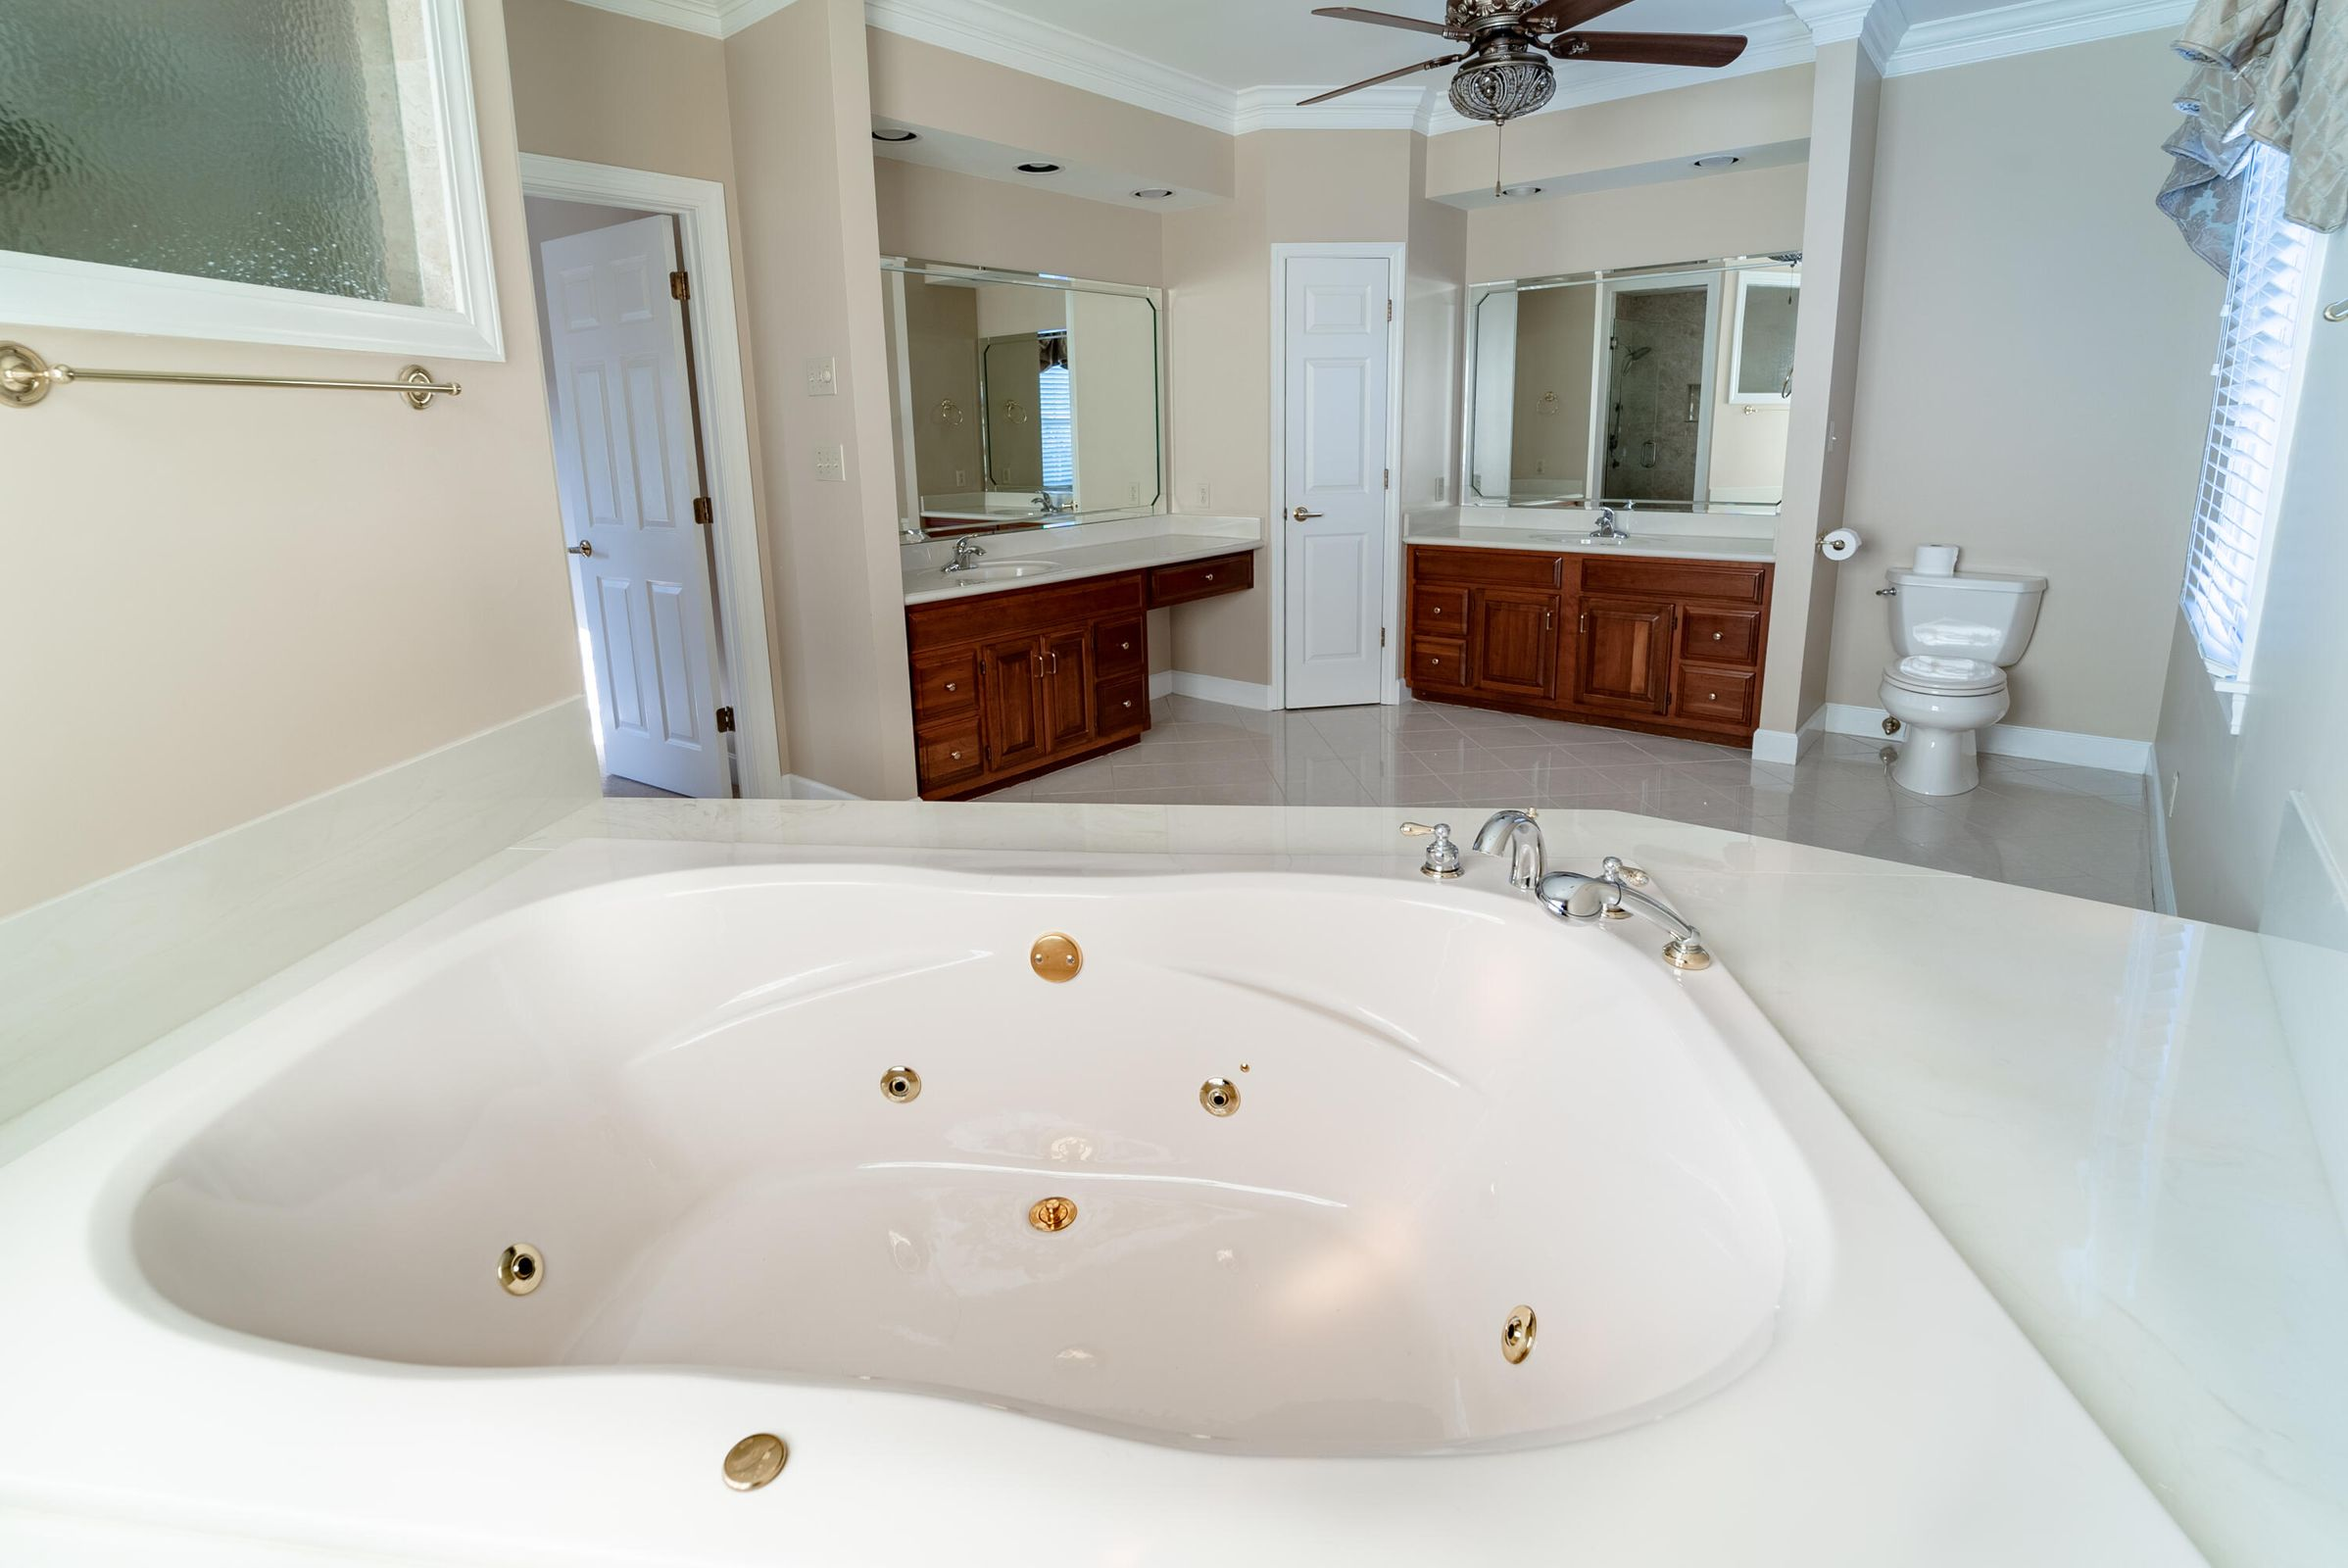 Jetted tub in master